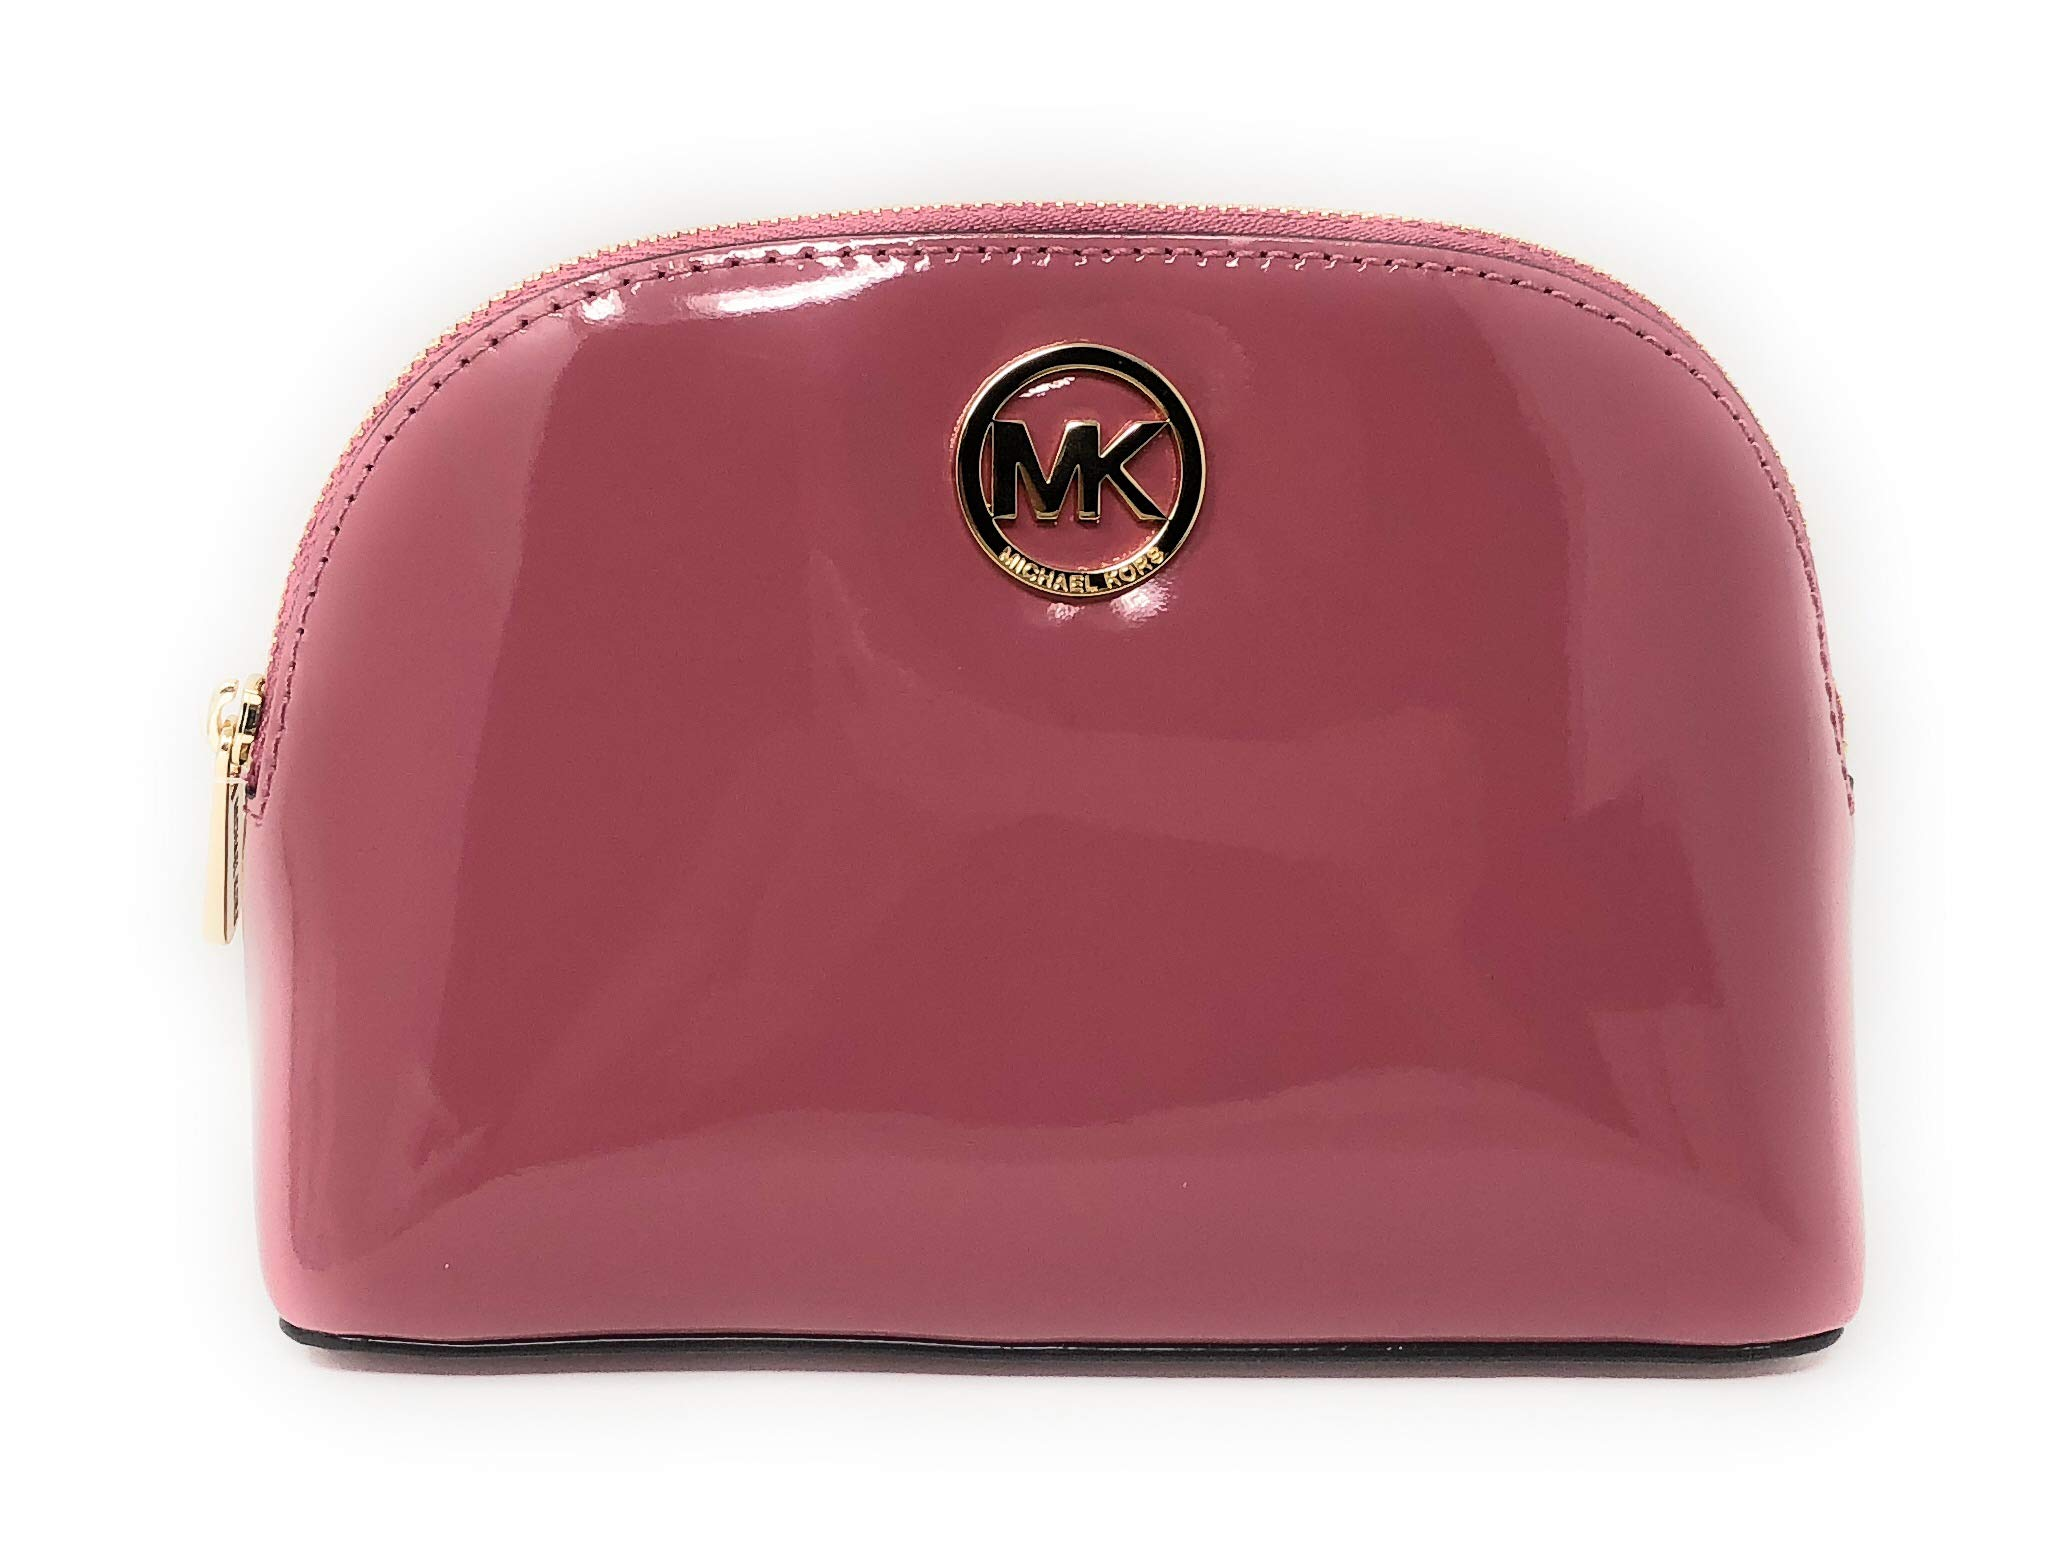 Michael Kors Fulton Patent Leather Cosmetic Travel Pouch in Tulip